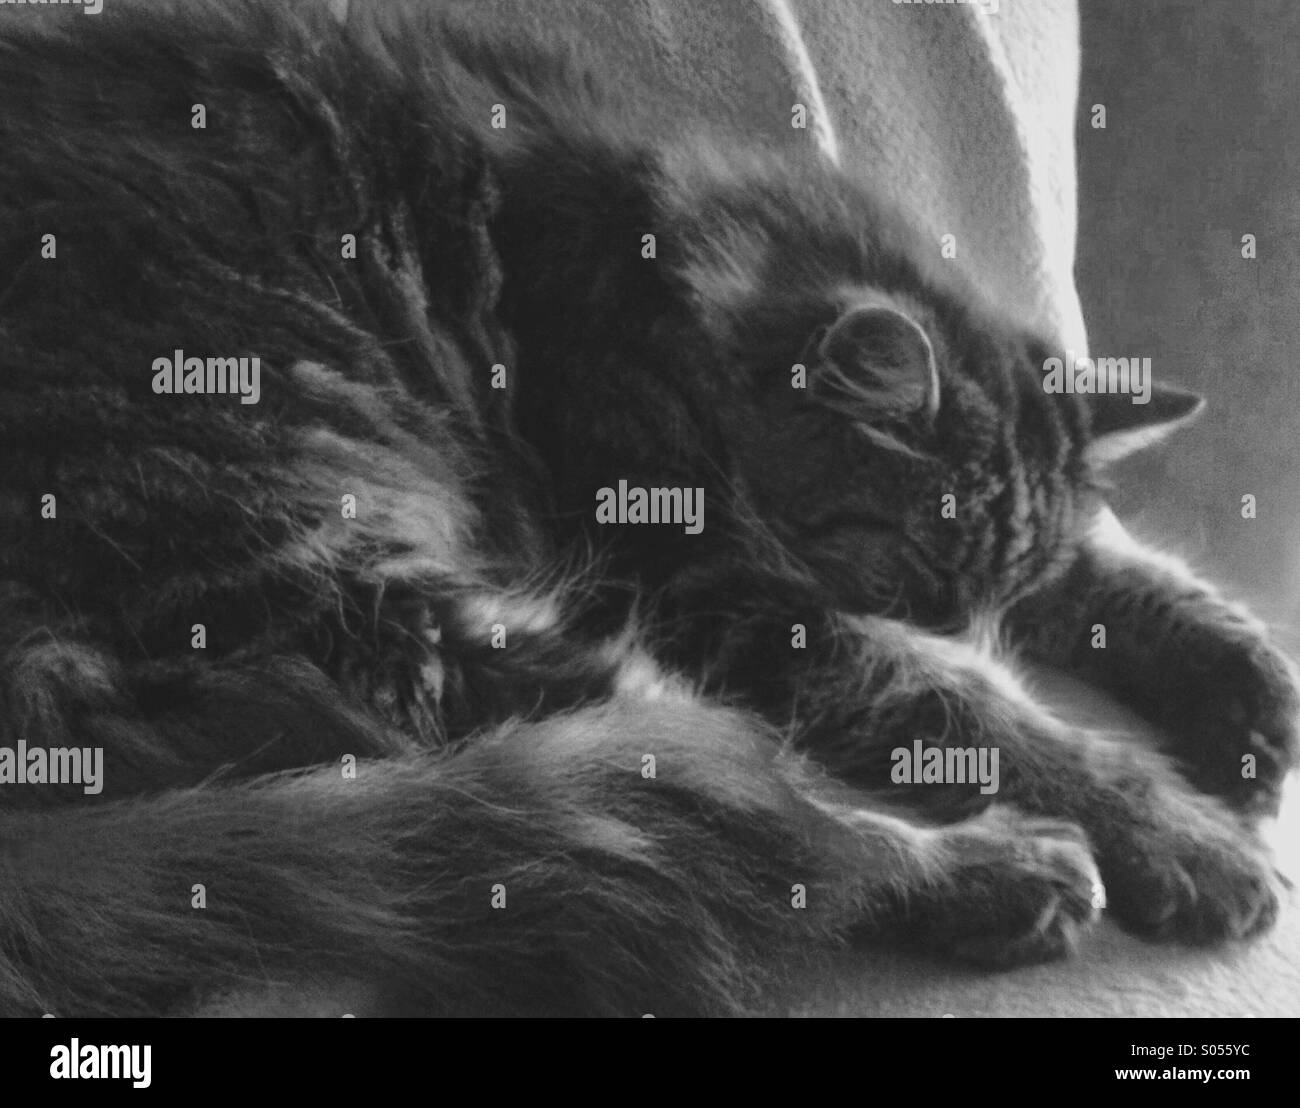 Dreamy picture of a sleeping cat Stock Photo